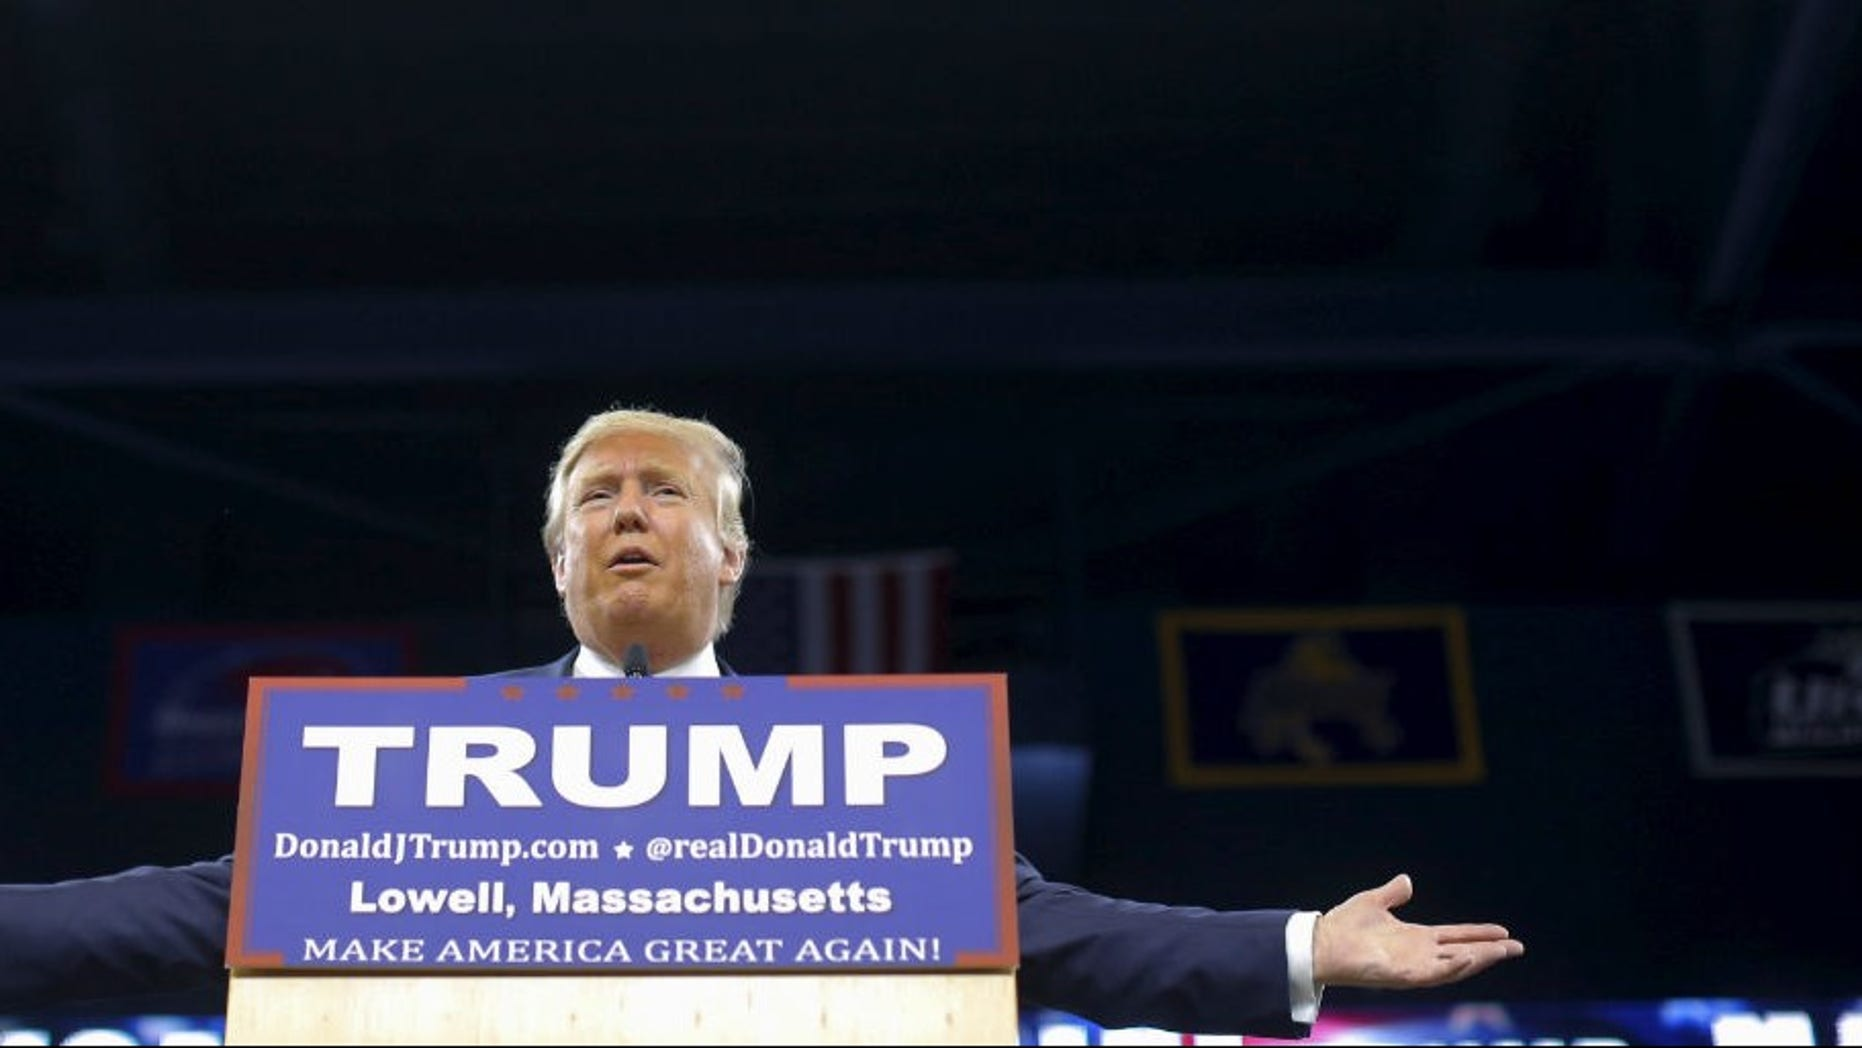 U.S. Republican presidential candidate Donald Trump speaks at a campaign rally in Lowell, Massachusetts January 4, 2016. REUTERS/Brian Snyder